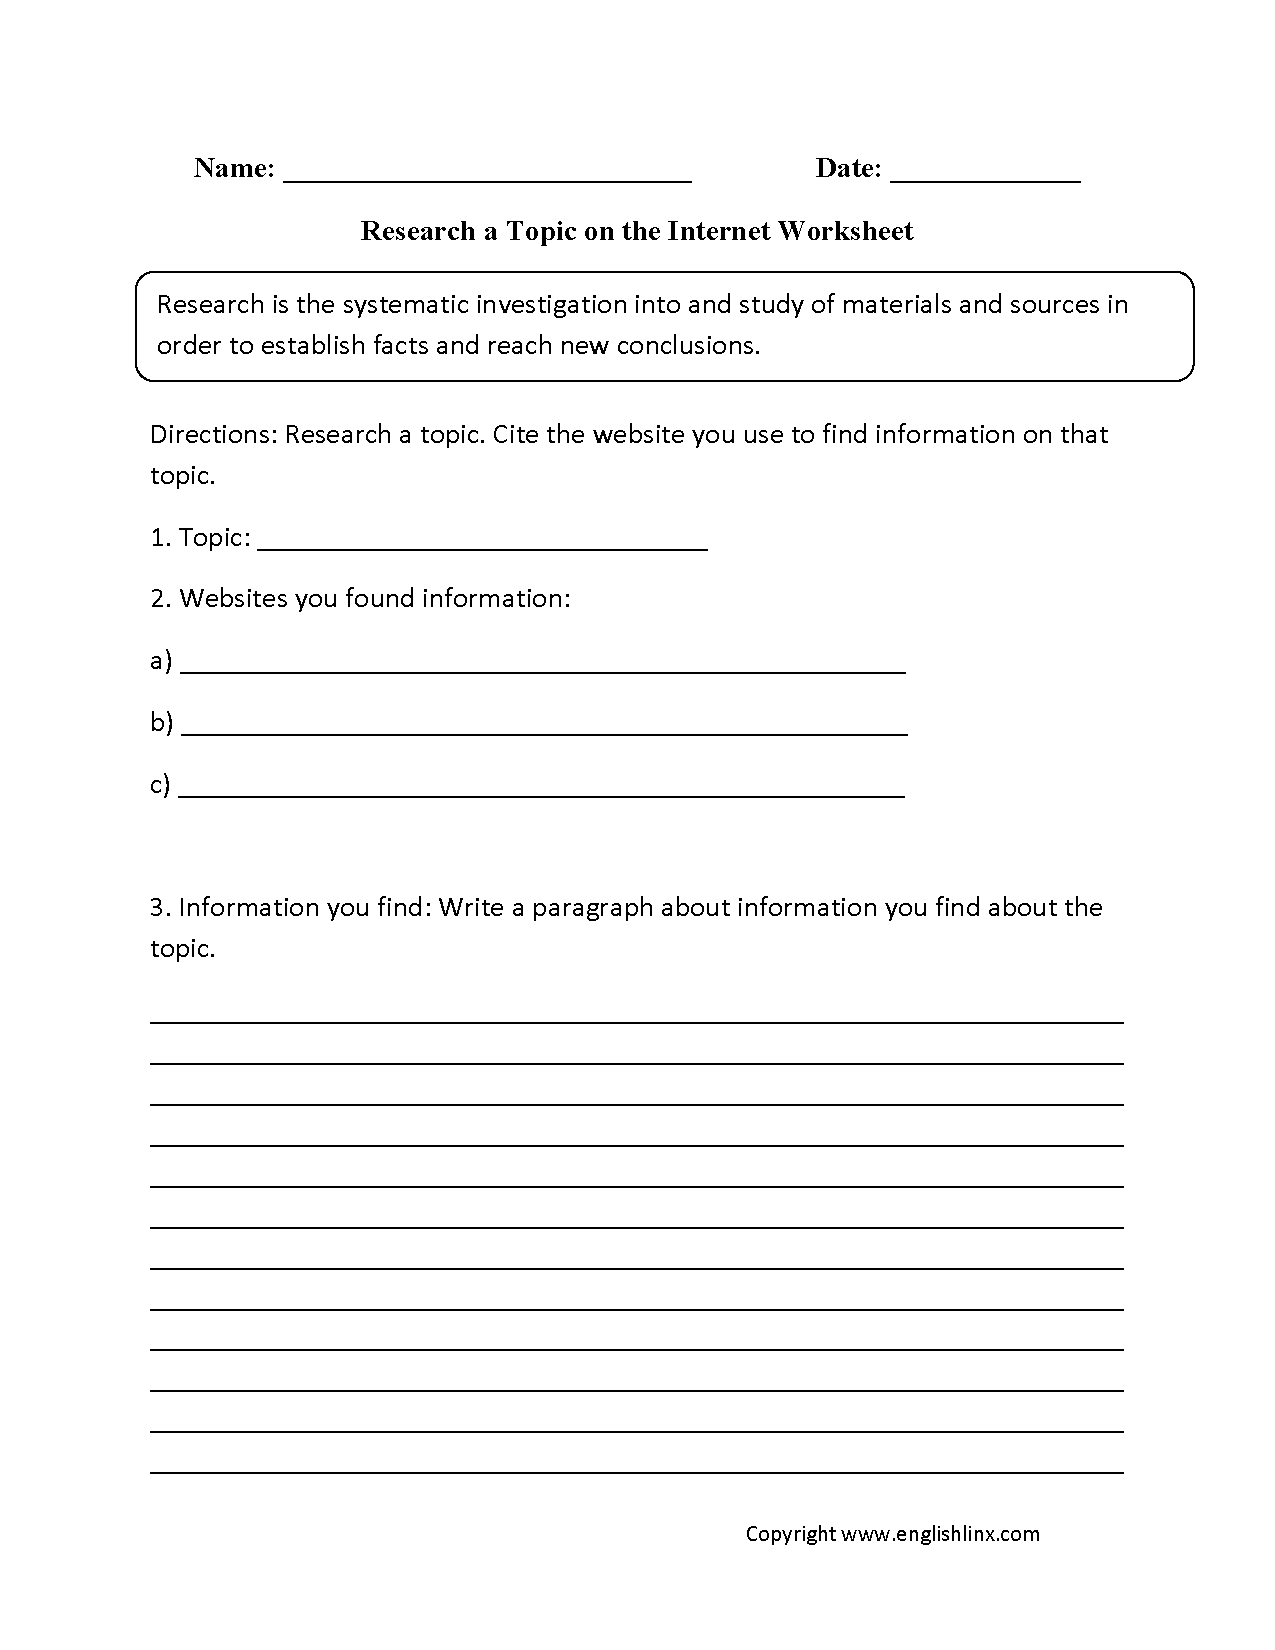 Aldiablosus  Marvelous Englishlinxcom  Research Worksheets With Lovely On The Internet Worksheet With Comely Worksheet On The Water Cycle Also Weathering Erosion Worksheet In Addition Input Devices Worksheet And Blank Clock Face Worksheets As Well As Math Worksheet Generators Additionally Gcse Business Studies Worksheets From Englishlinxcom With Aldiablosus  Lovely Englishlinxcom  Research Worksheets With Comely On The Internet Worksheet And Marvelous Worksheet On The Water Cycle Also Weathering Erosion Worksheet In Addition Input Devices Worksheet From Englishlinxcom